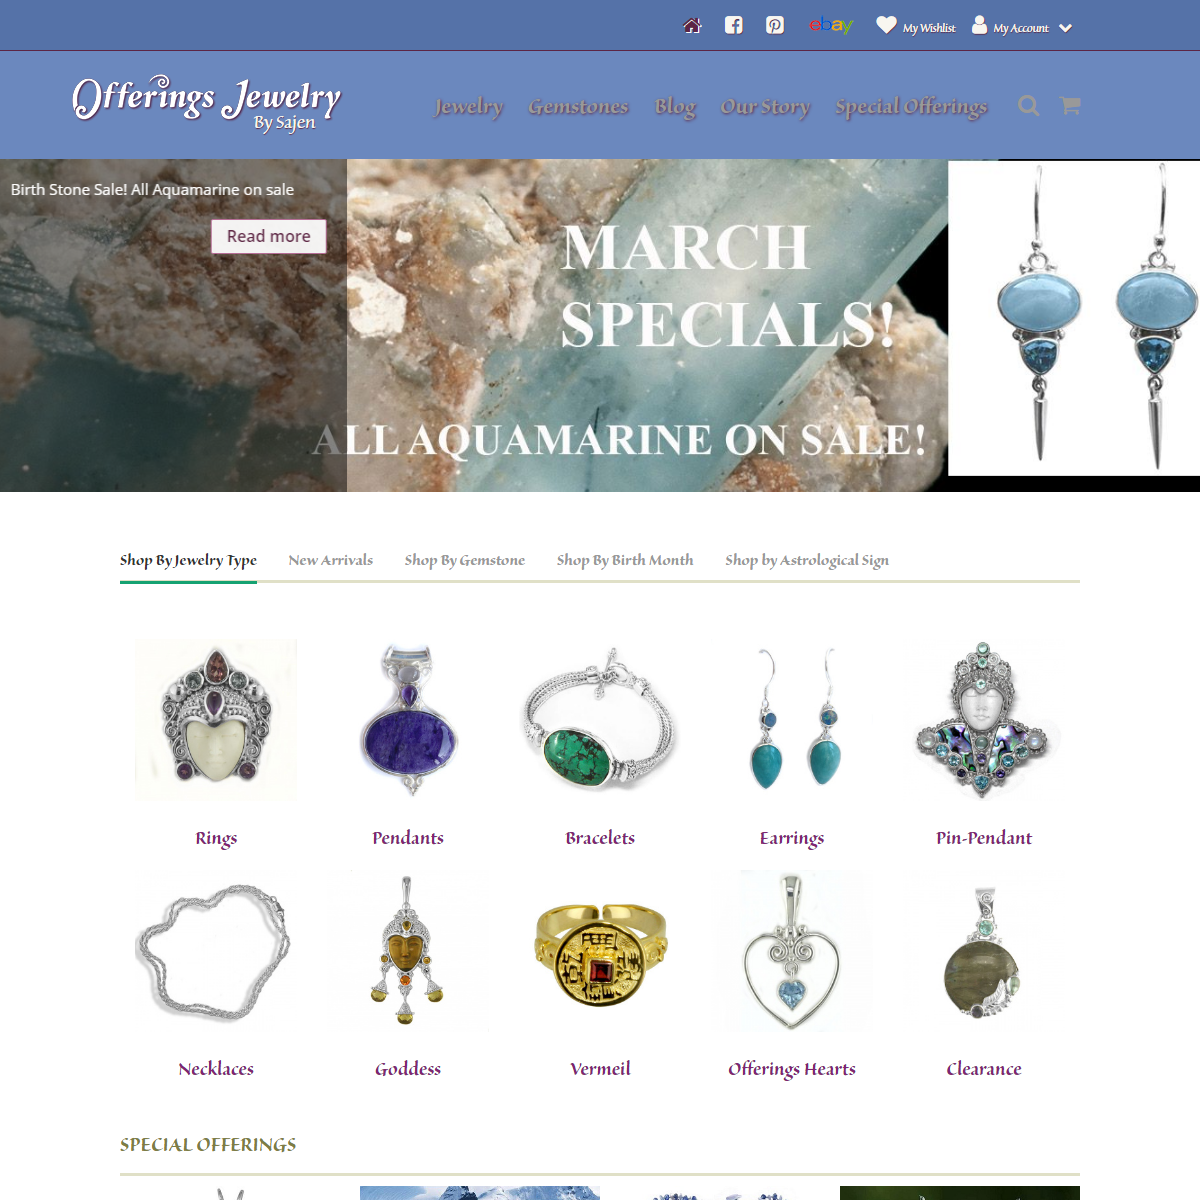 Gemstone Necklaces, Goddess Jewelry, and Unique Rings - Offerings Jewelry by Sajen